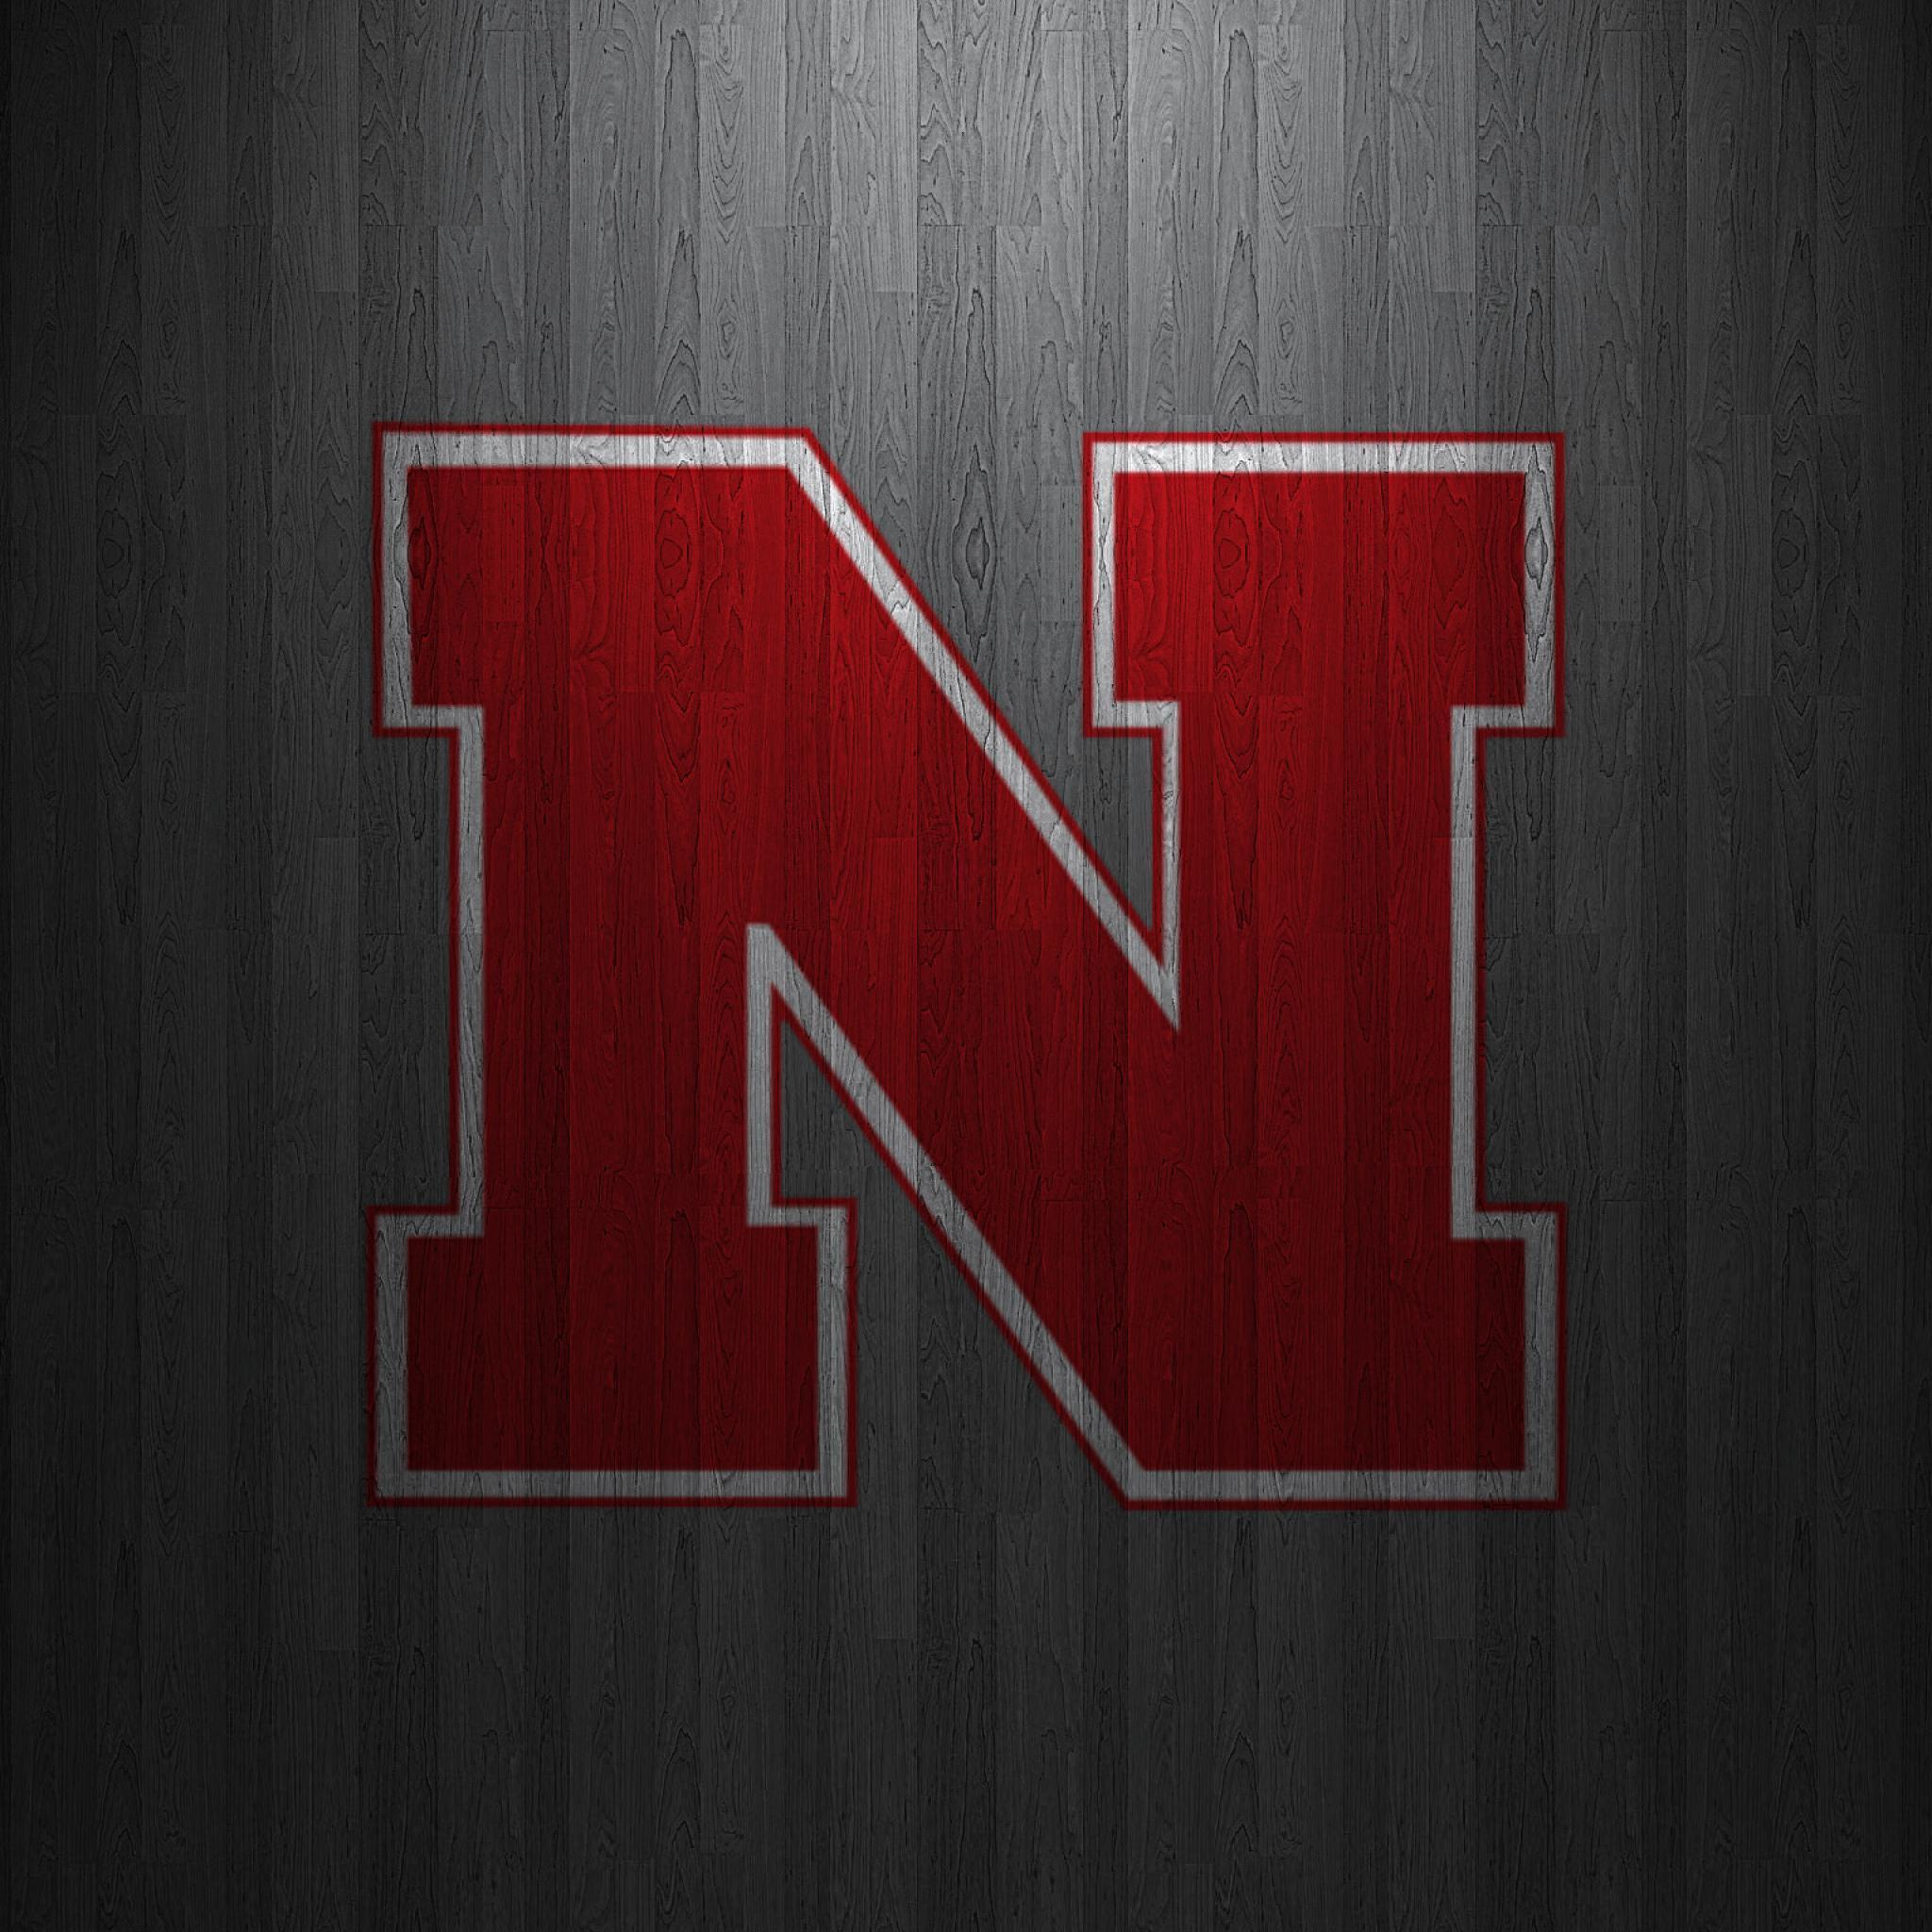 husker wallpaper for ipad